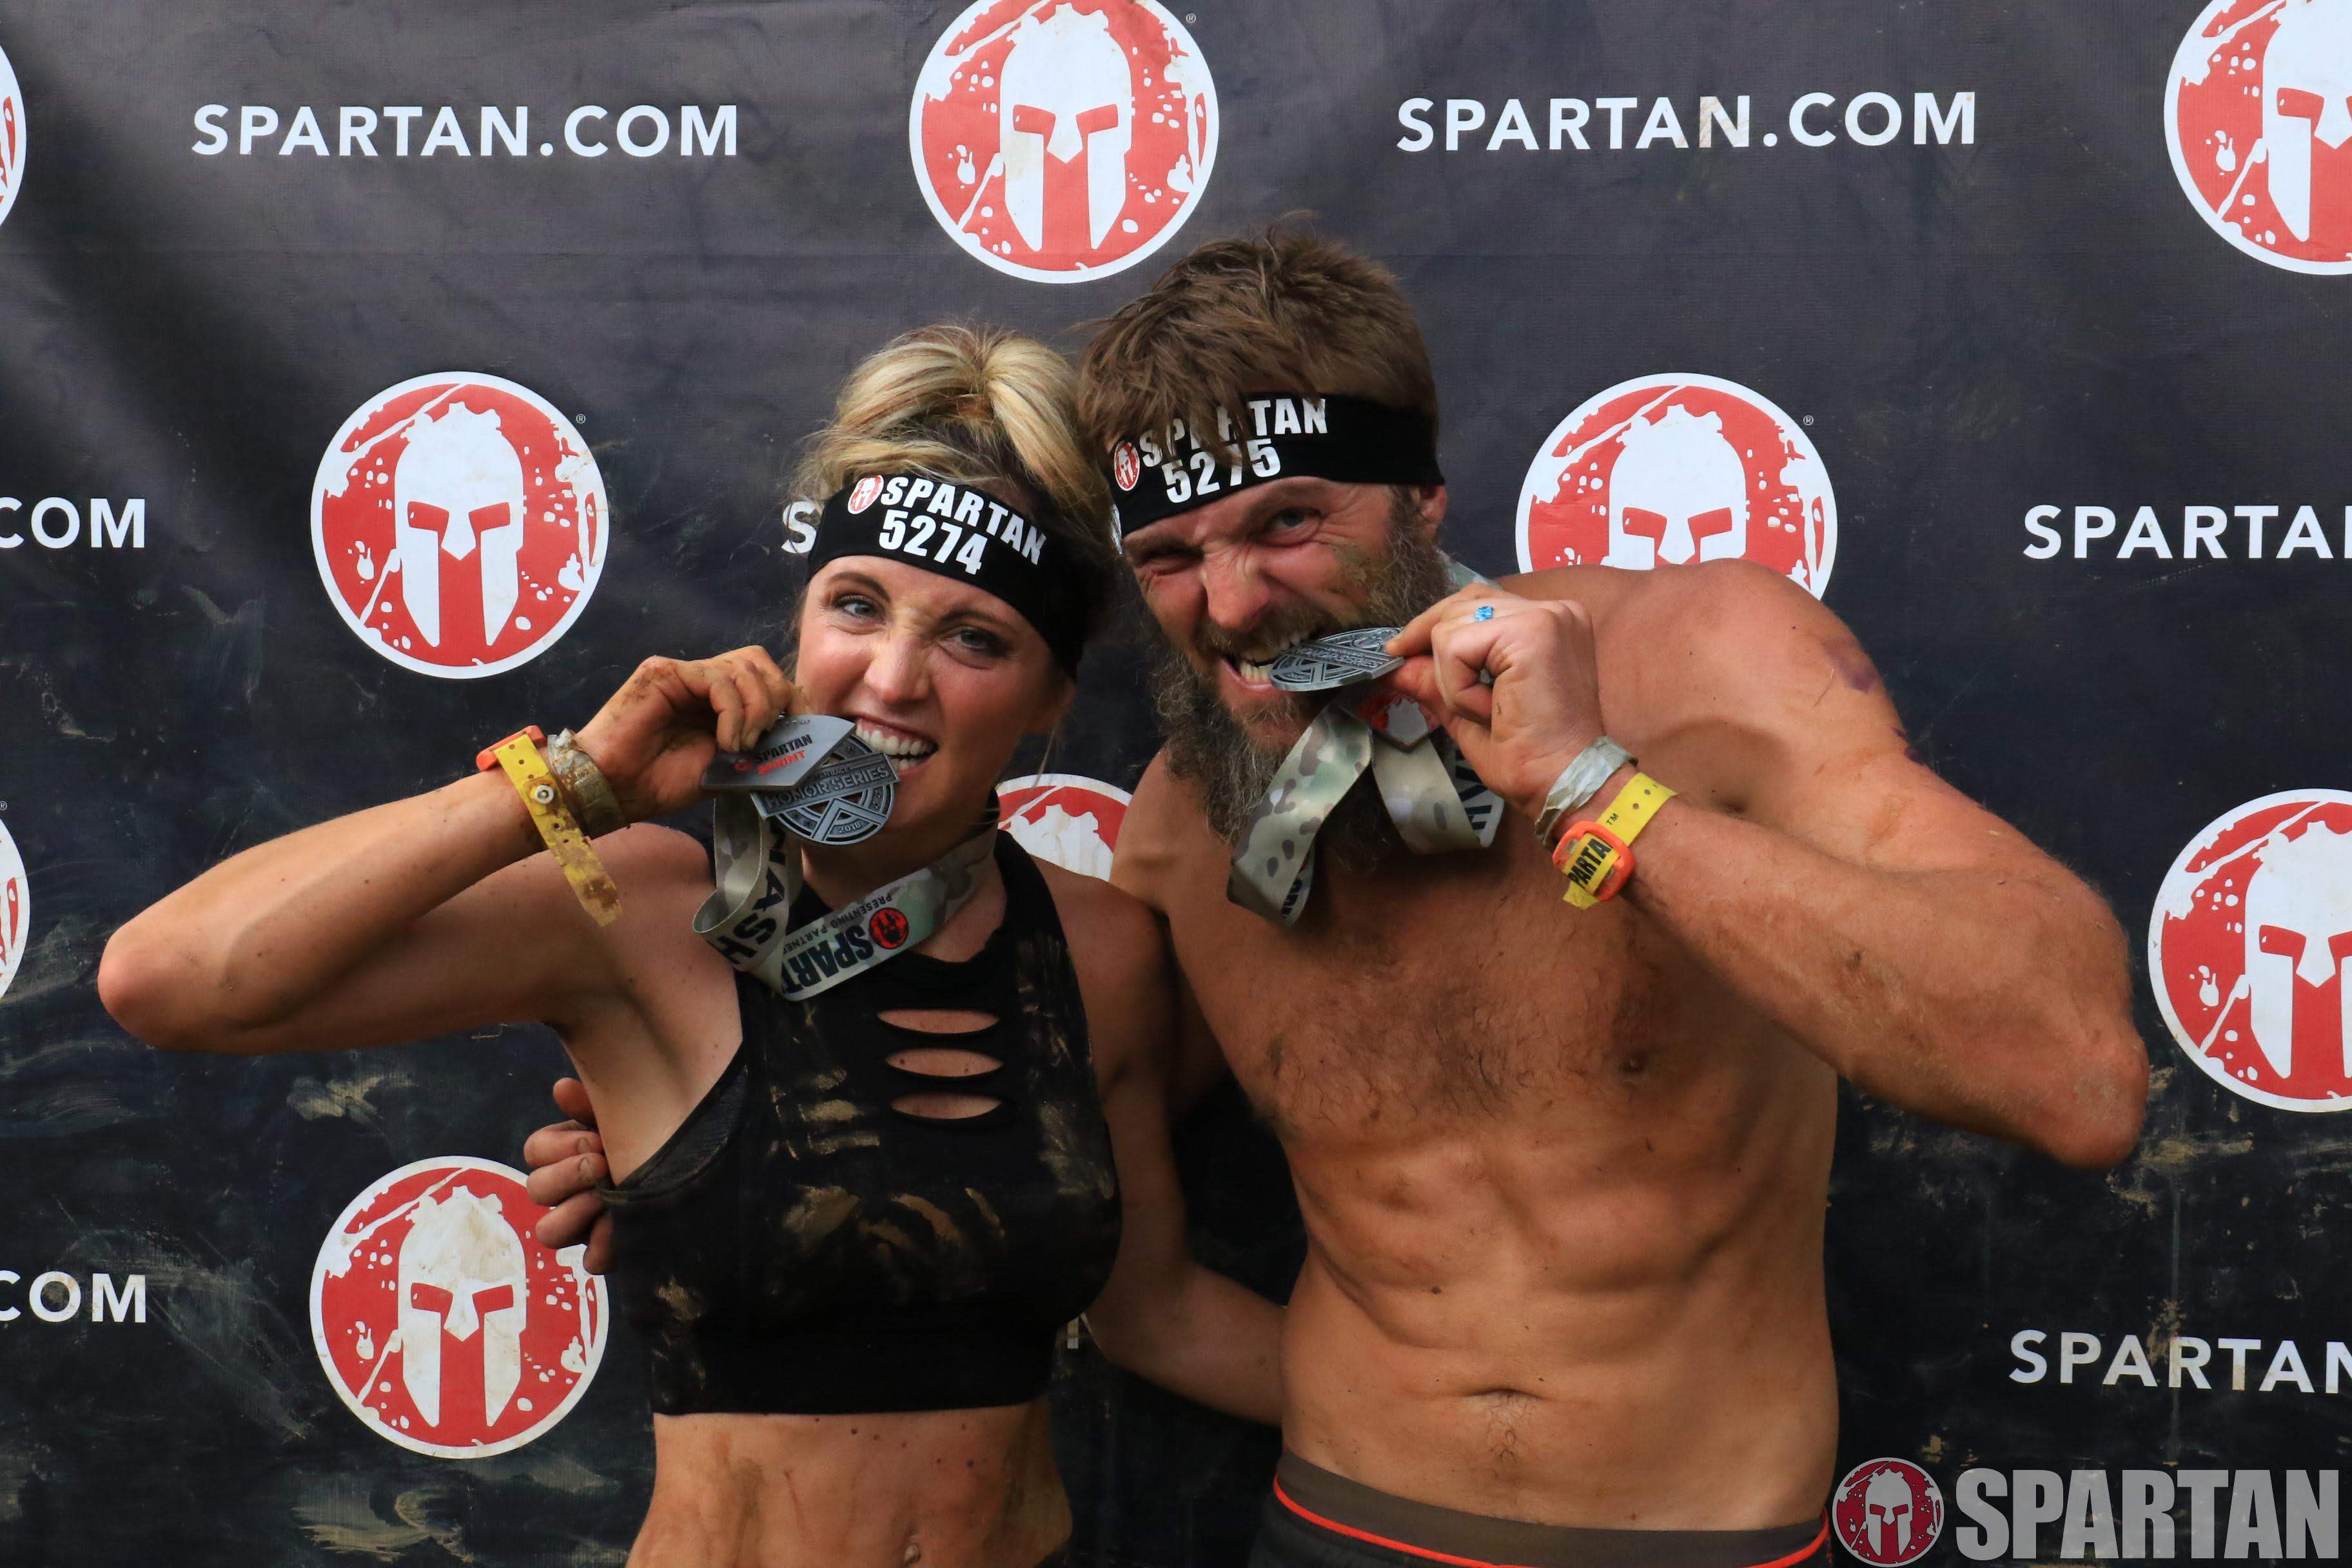 guide to spartan race